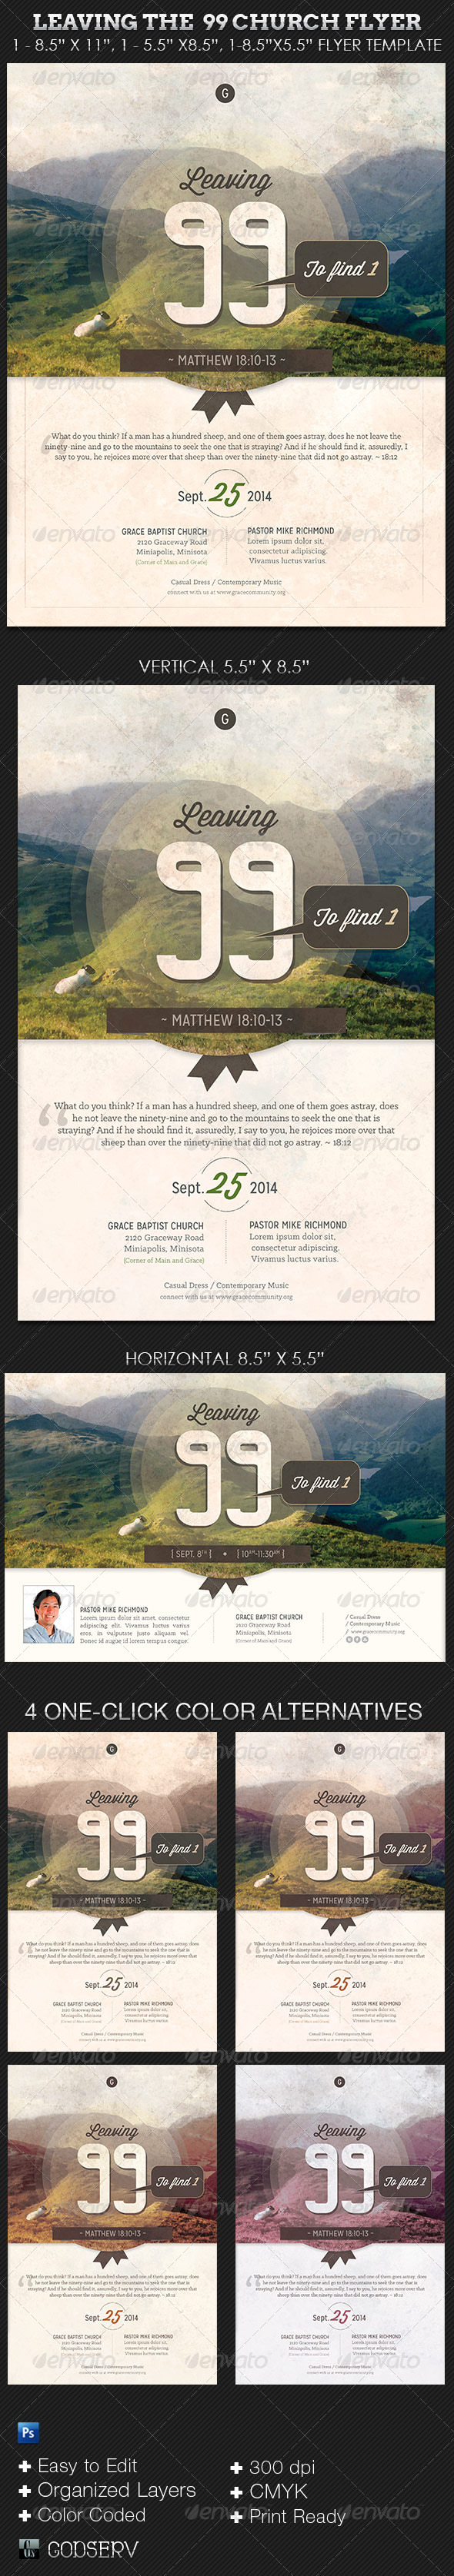 GraphicRiver Leaving The 99 Church Flyer Template 5750476